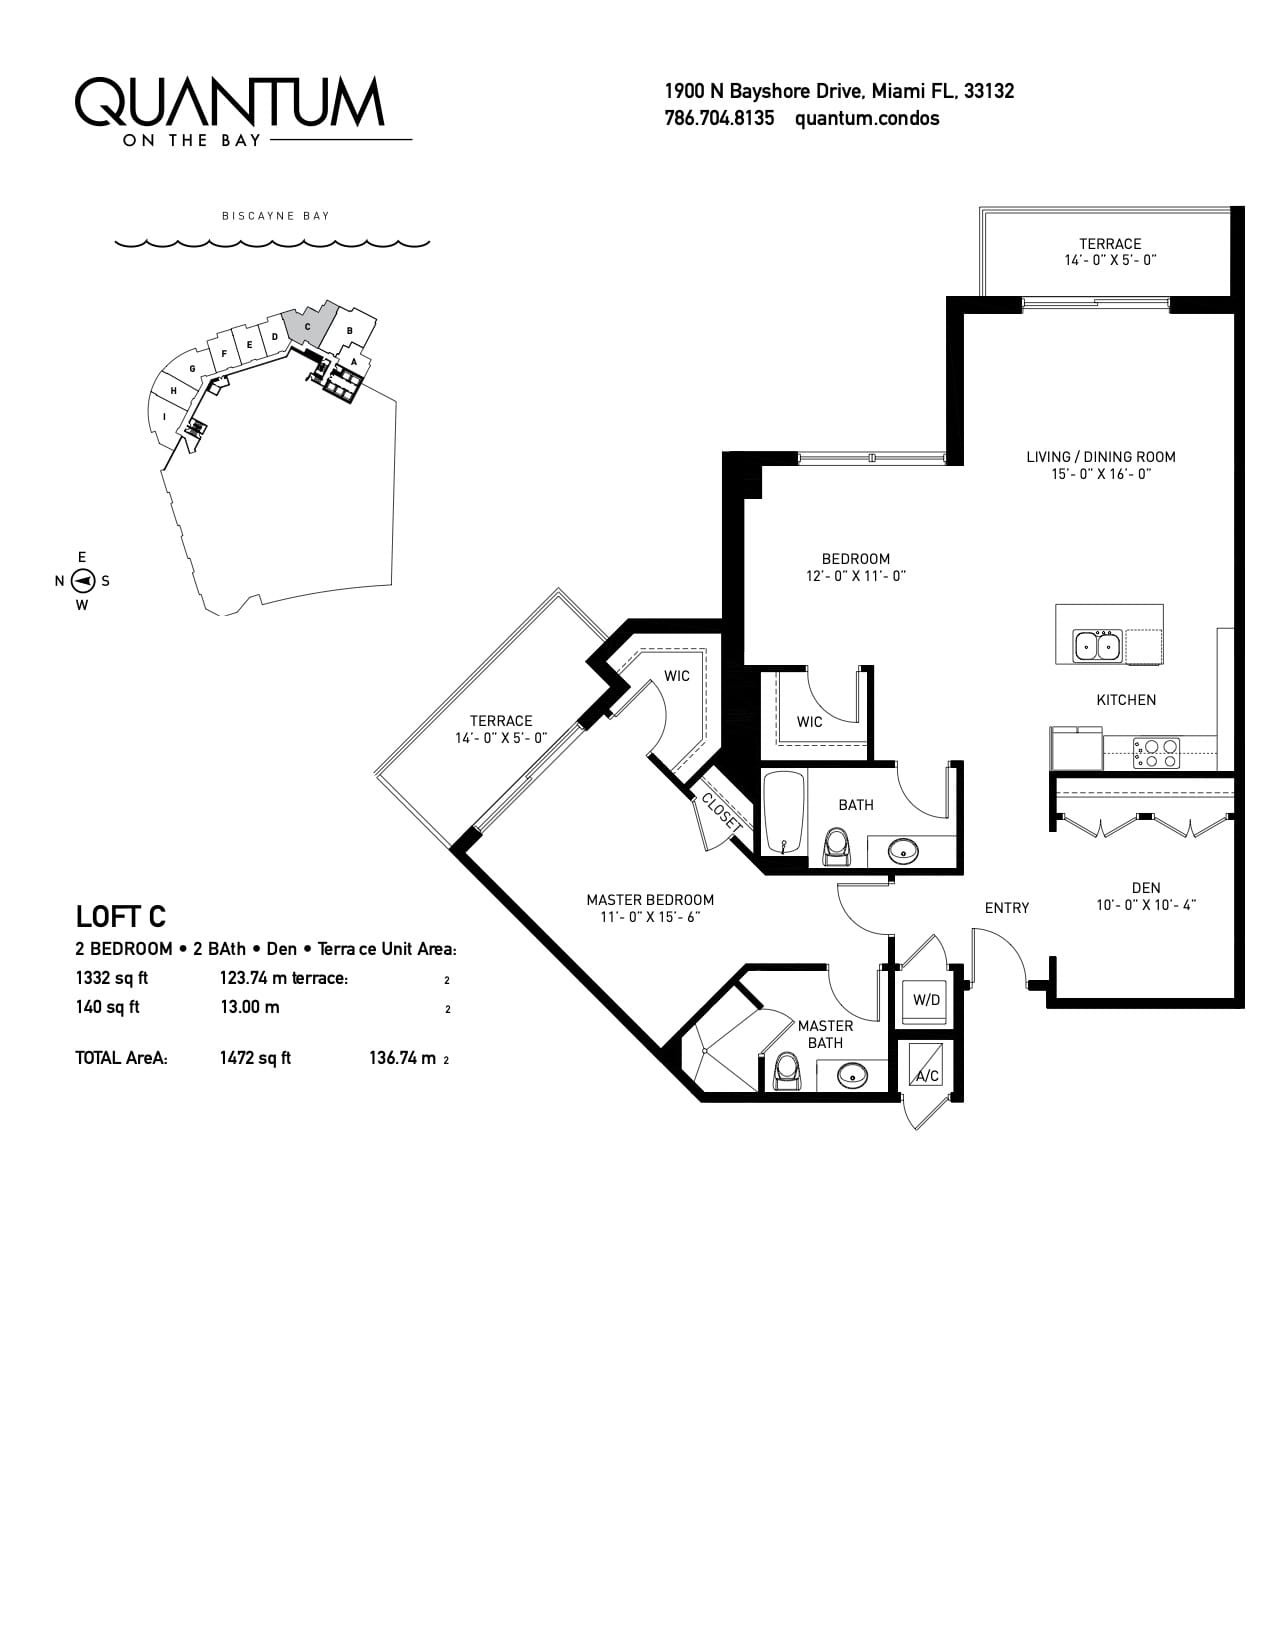 EMH3 Real Estate Quantum on the Bay Loft